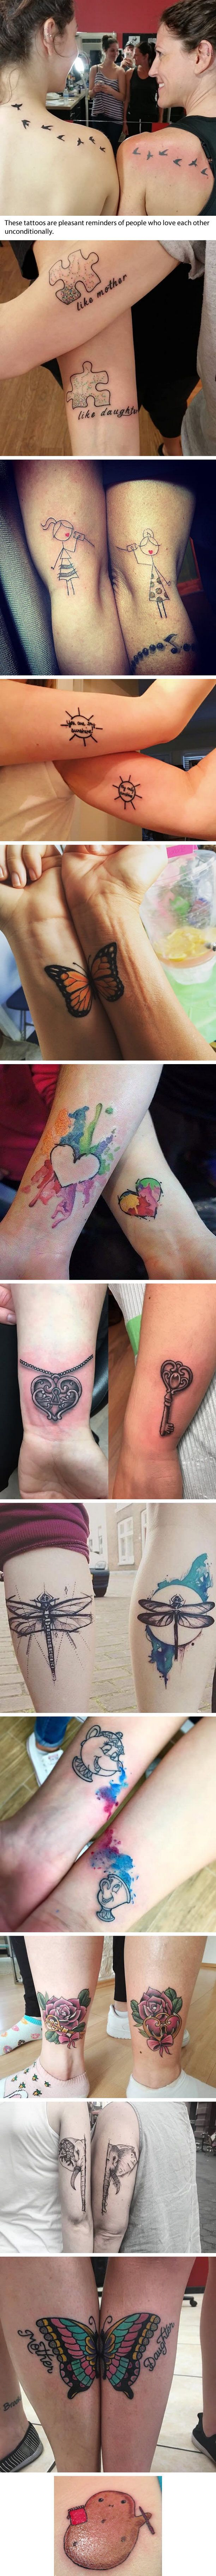 Tattoos are employed in line with radiation and reconstructive surgery. It's not simple to recognize all his tattoos. For any reason you pick, the cro...